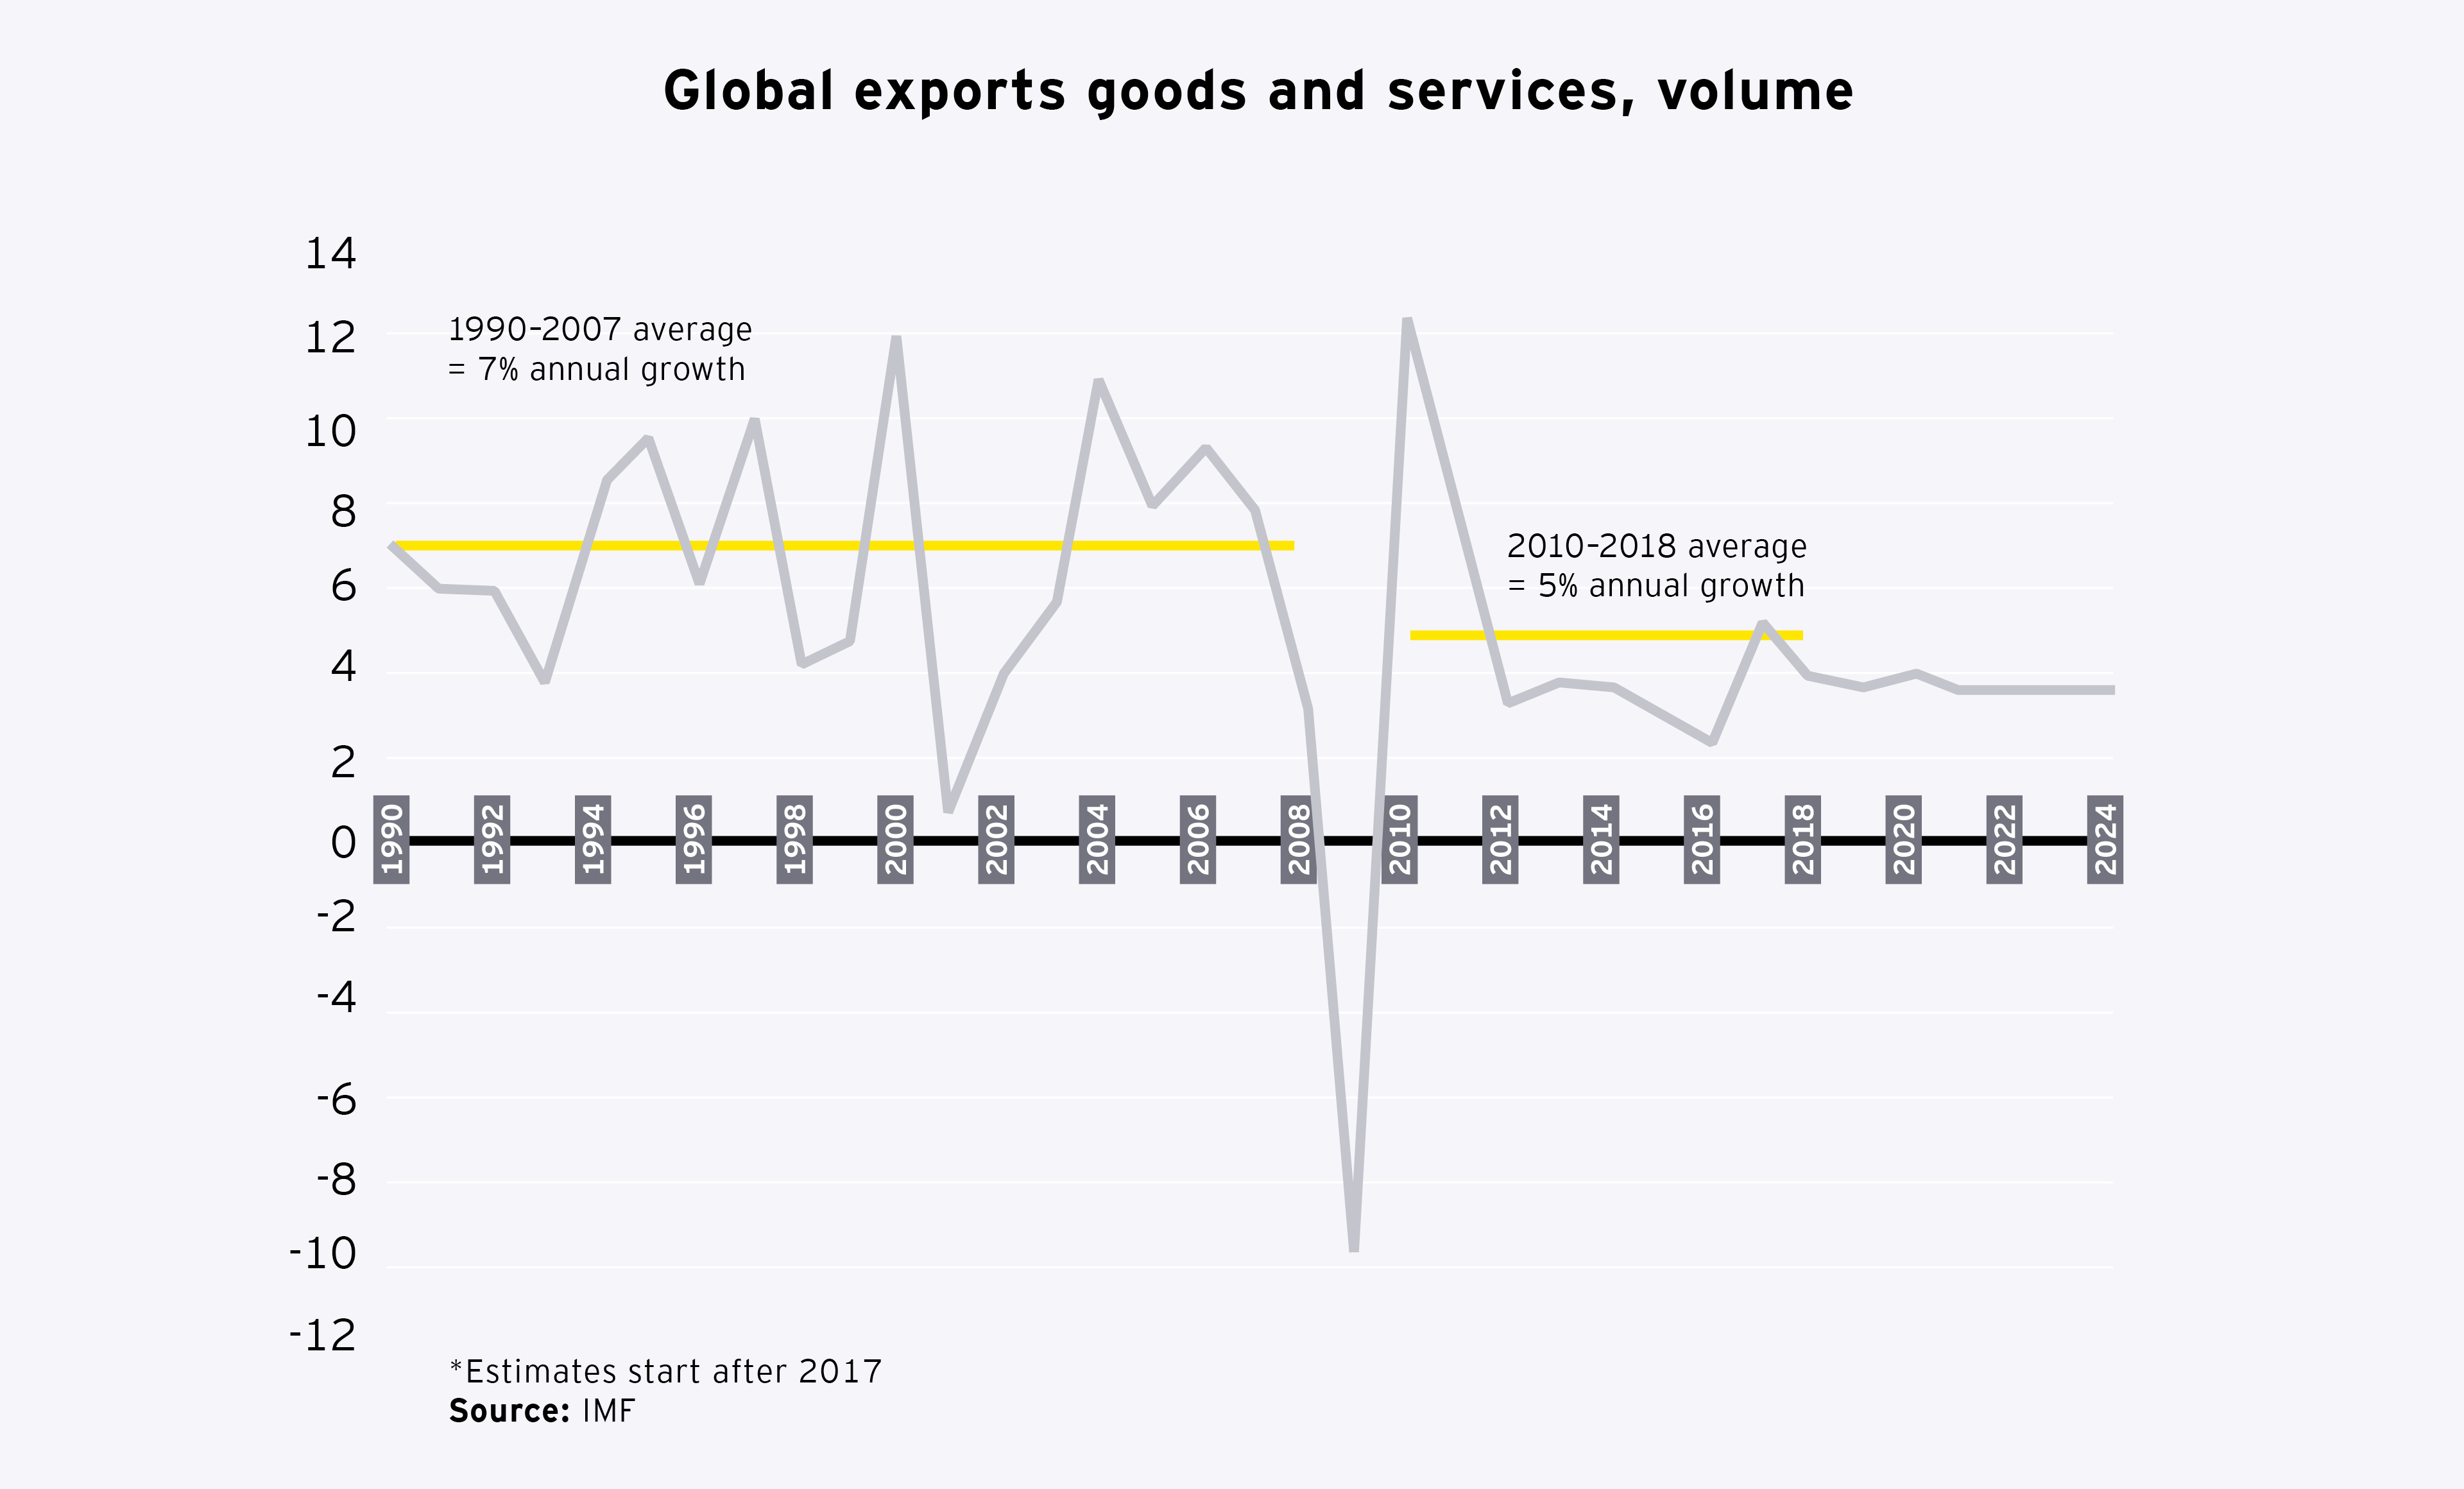 ey the chart trade policy